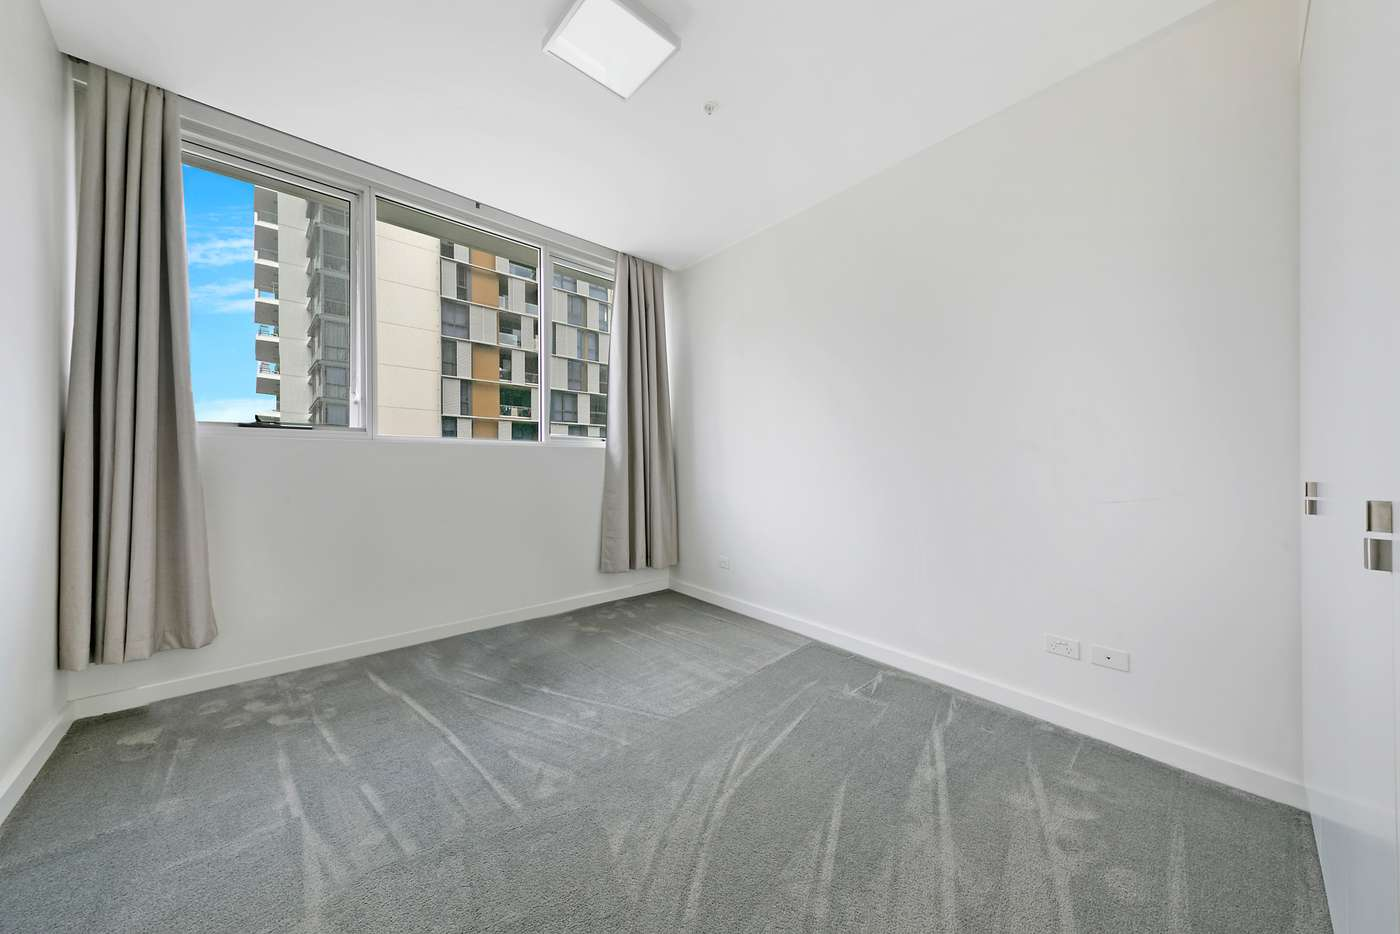 Fifth view of Homely apartment listing, 308/15 Gadigal Avenue, Zetland NSW 2017